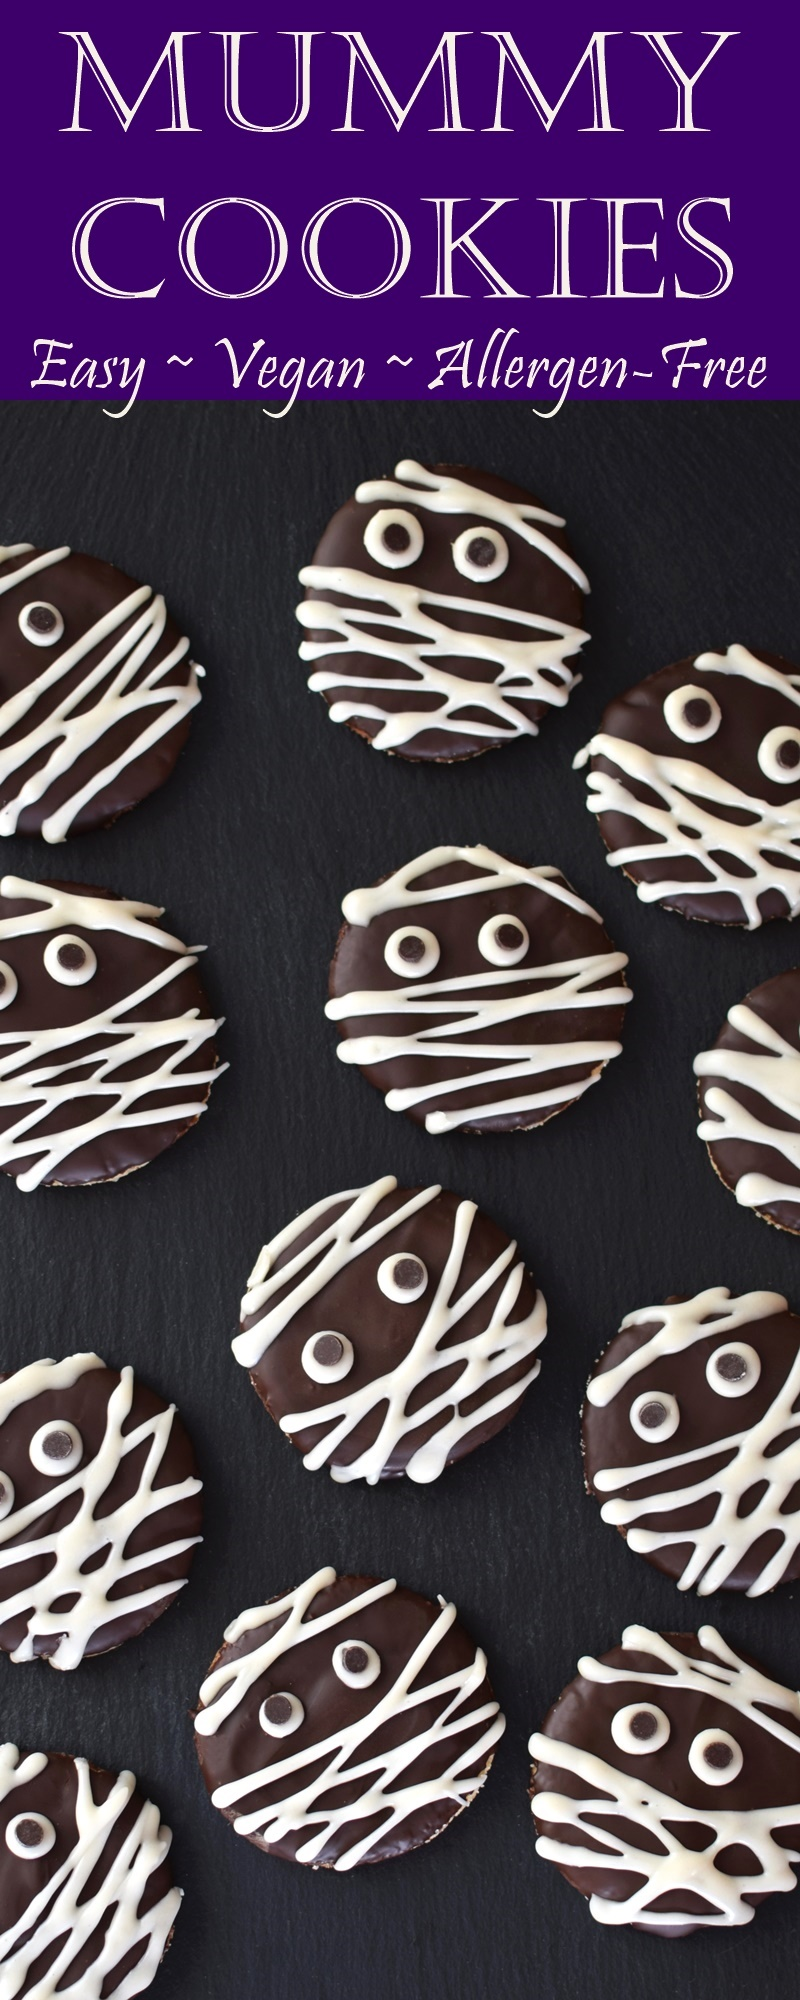 Mummy Cookies Recipe - Super Easy! Made dairy-free, gluten-free, vegan & allergy-friendly